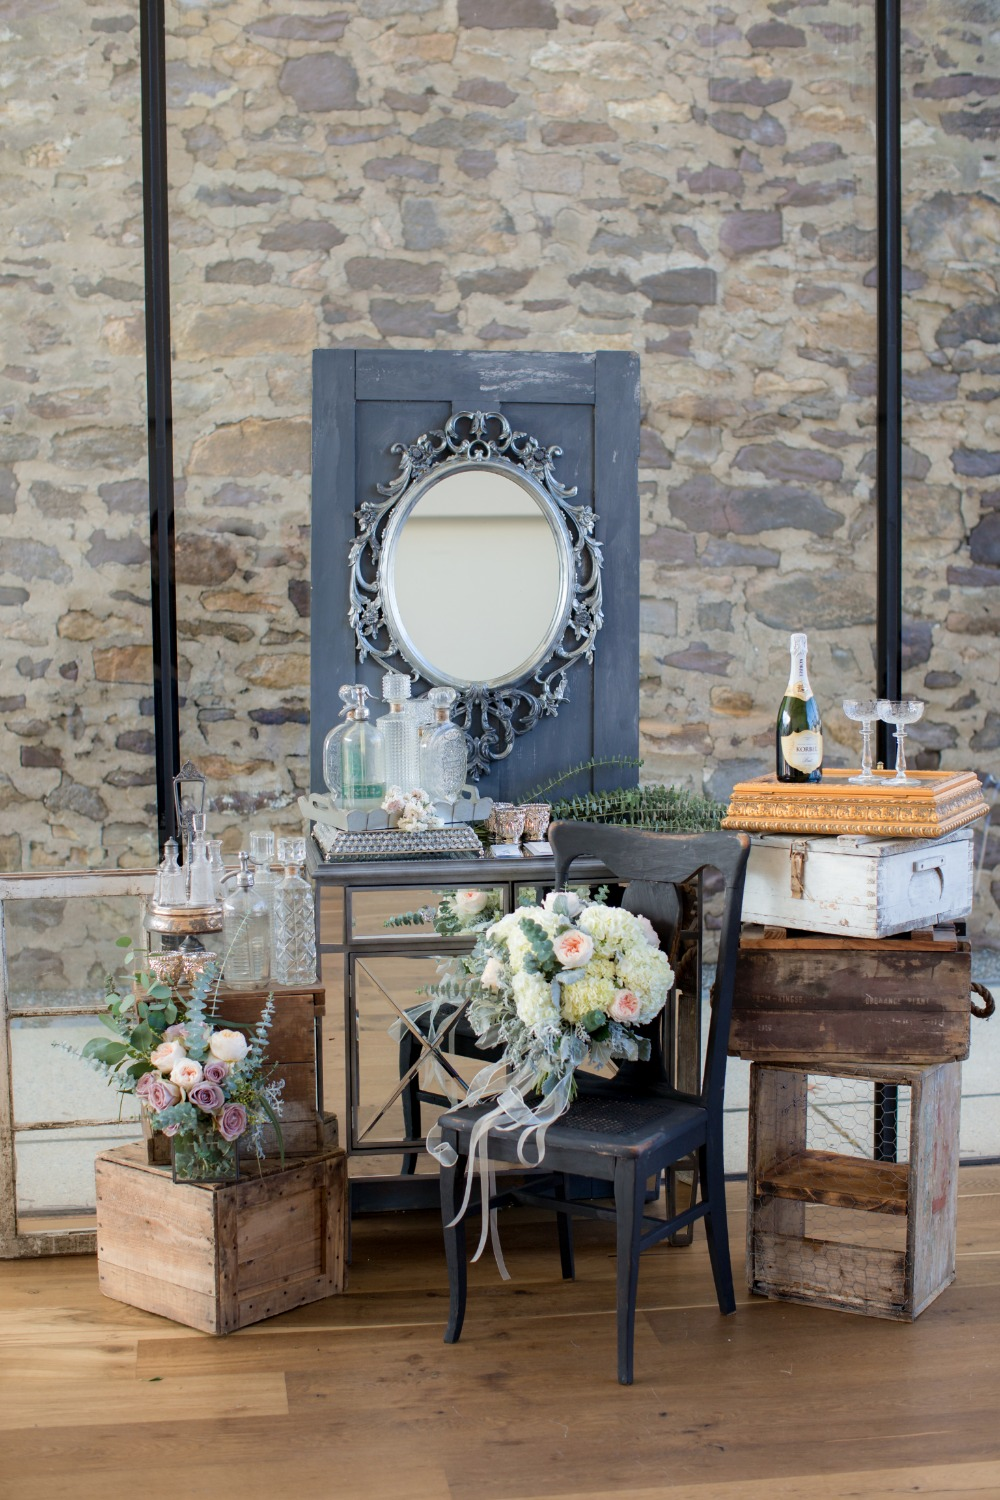 Vintage wedding decor and details